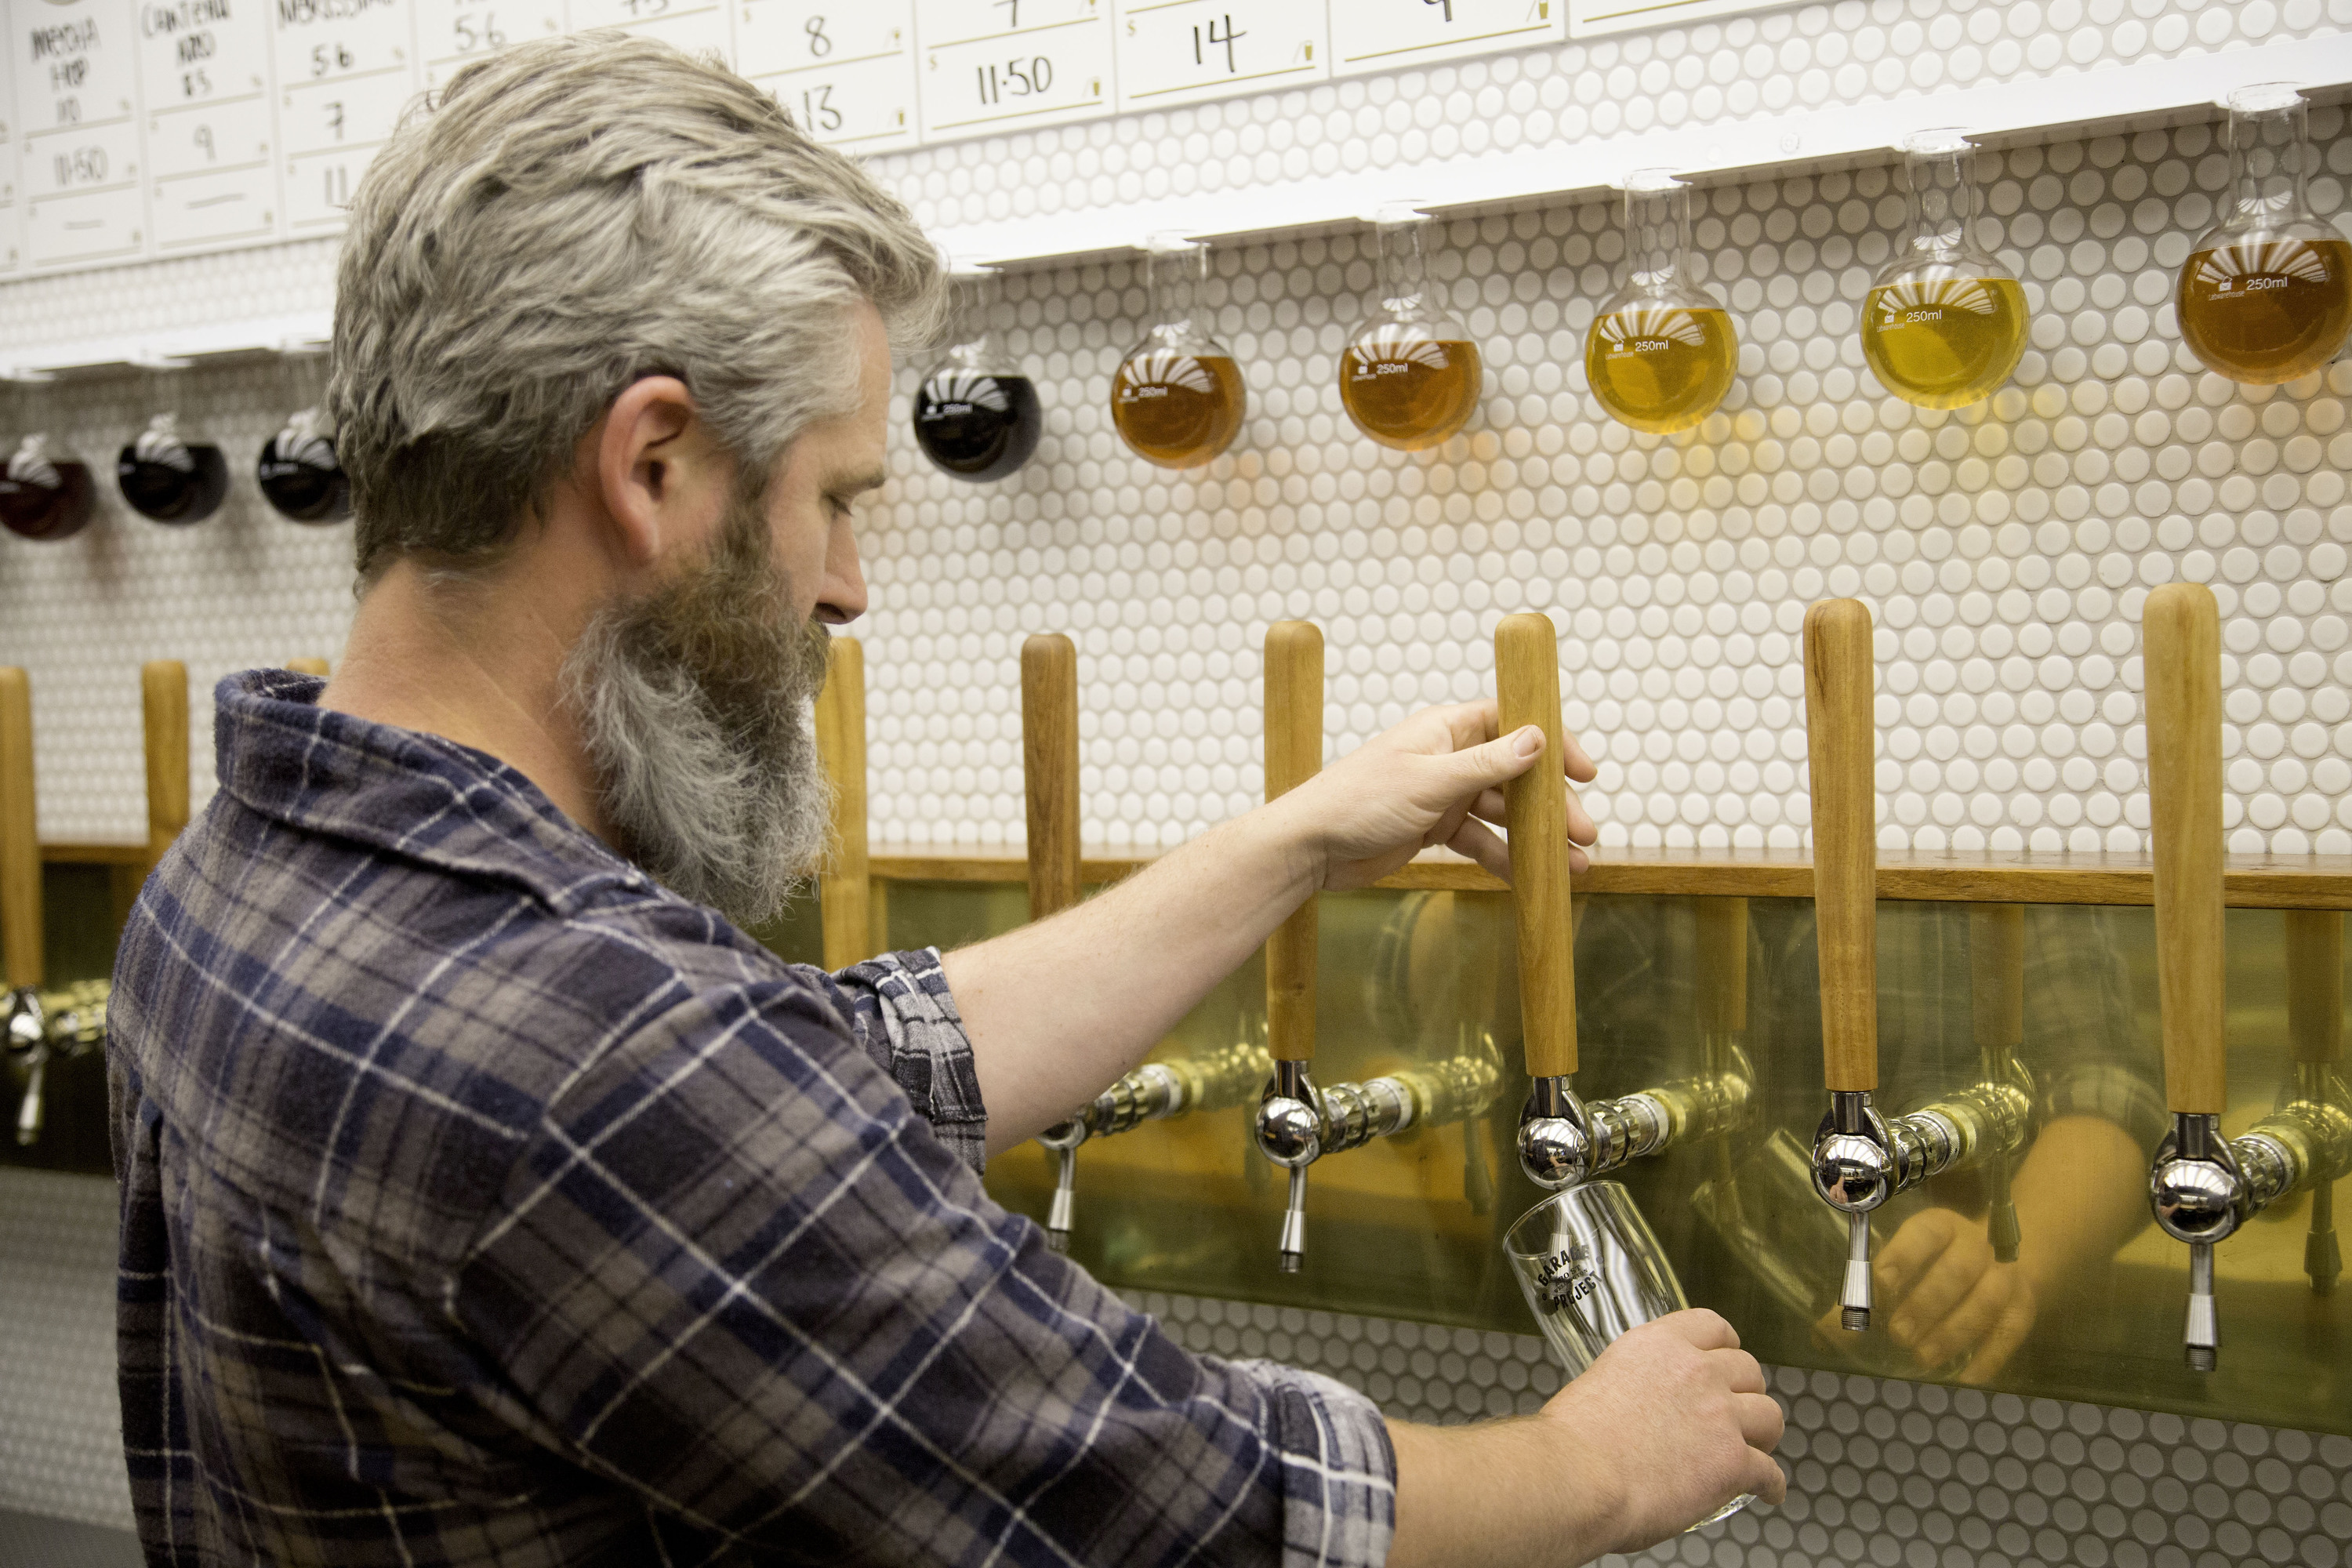 Pete pouring a beer at Taproom